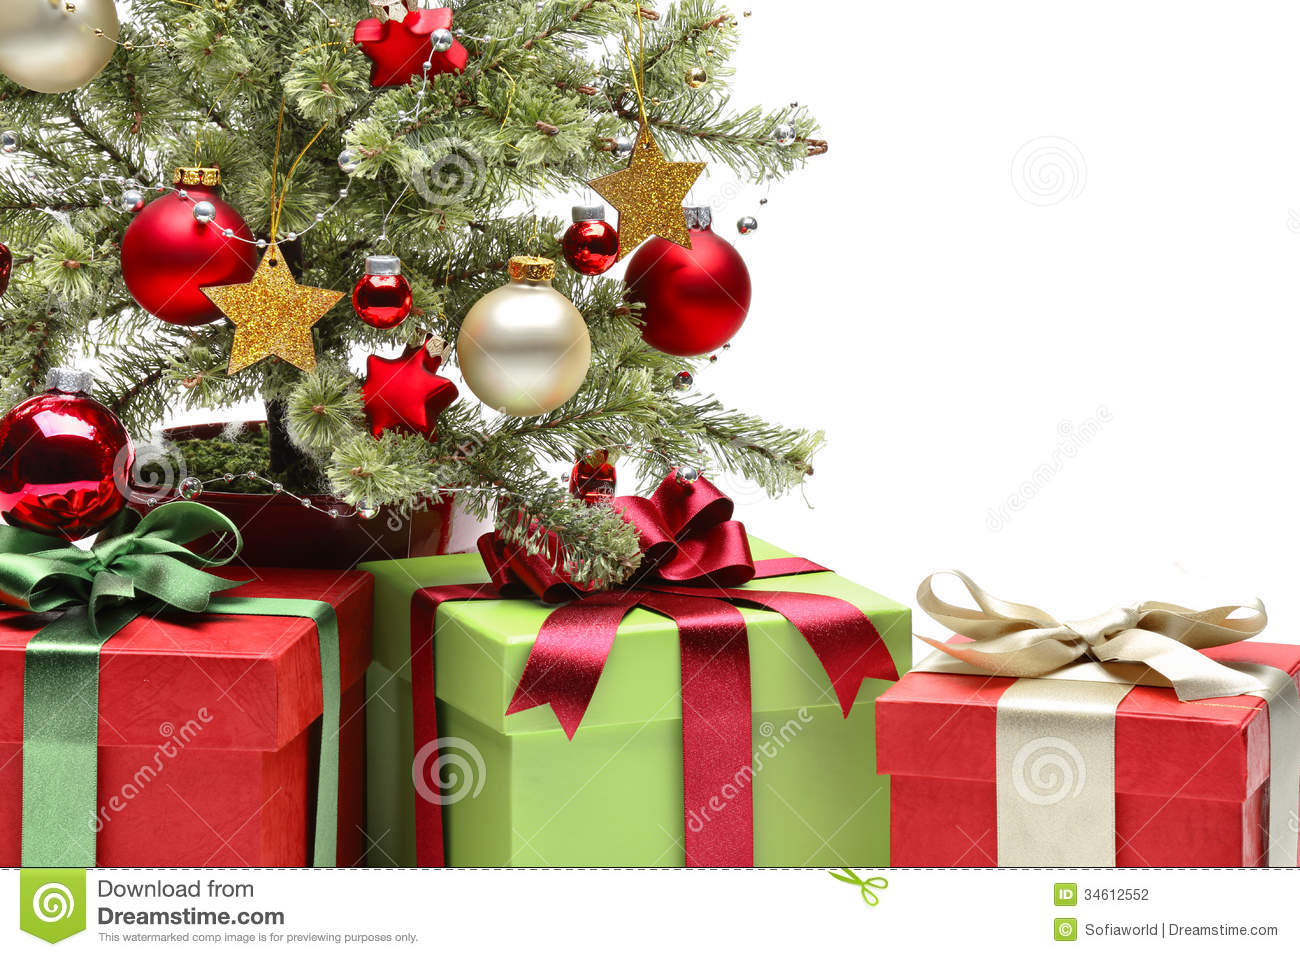 Decorated Christmas Tree And Gifts Stock Photography - Image: 34612552